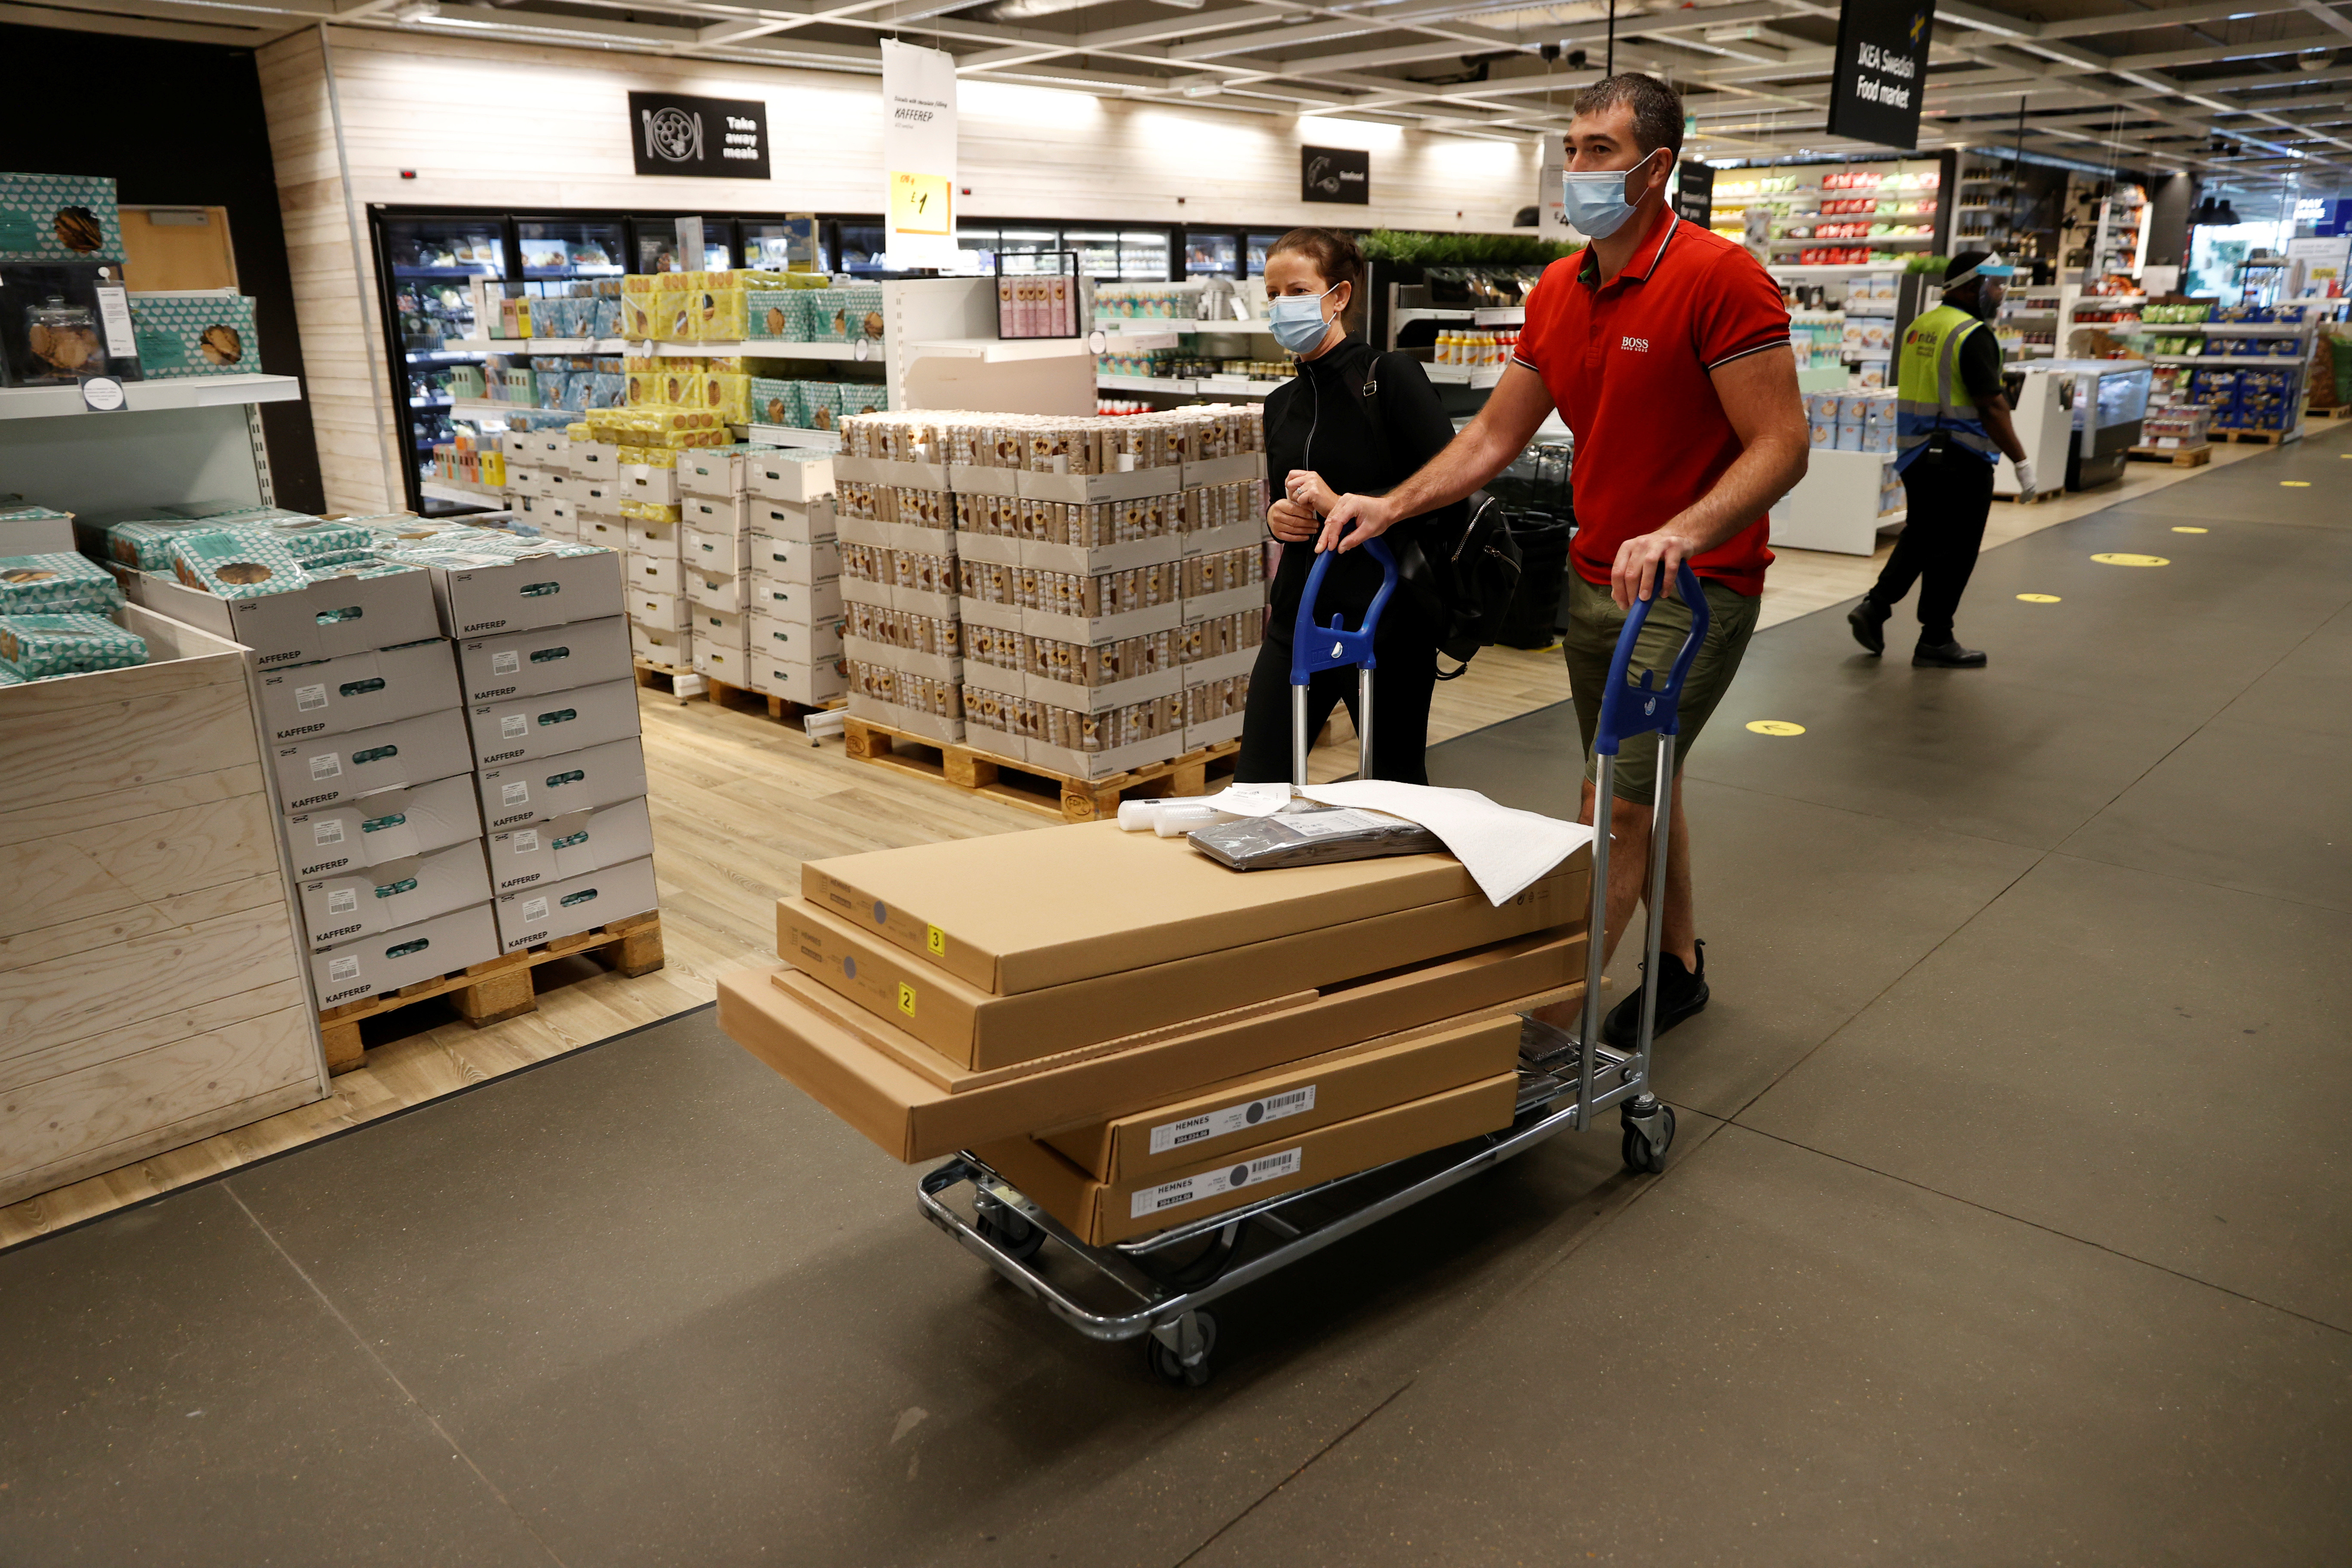 People wearing masks shop at Ikea in Tottenham as it re-opens, following the outbreak of the coronavirus disease (COVID-19), London, Britain, June 1, 2020. REUTERS/John Sibley - RC2A0H99S1LZ